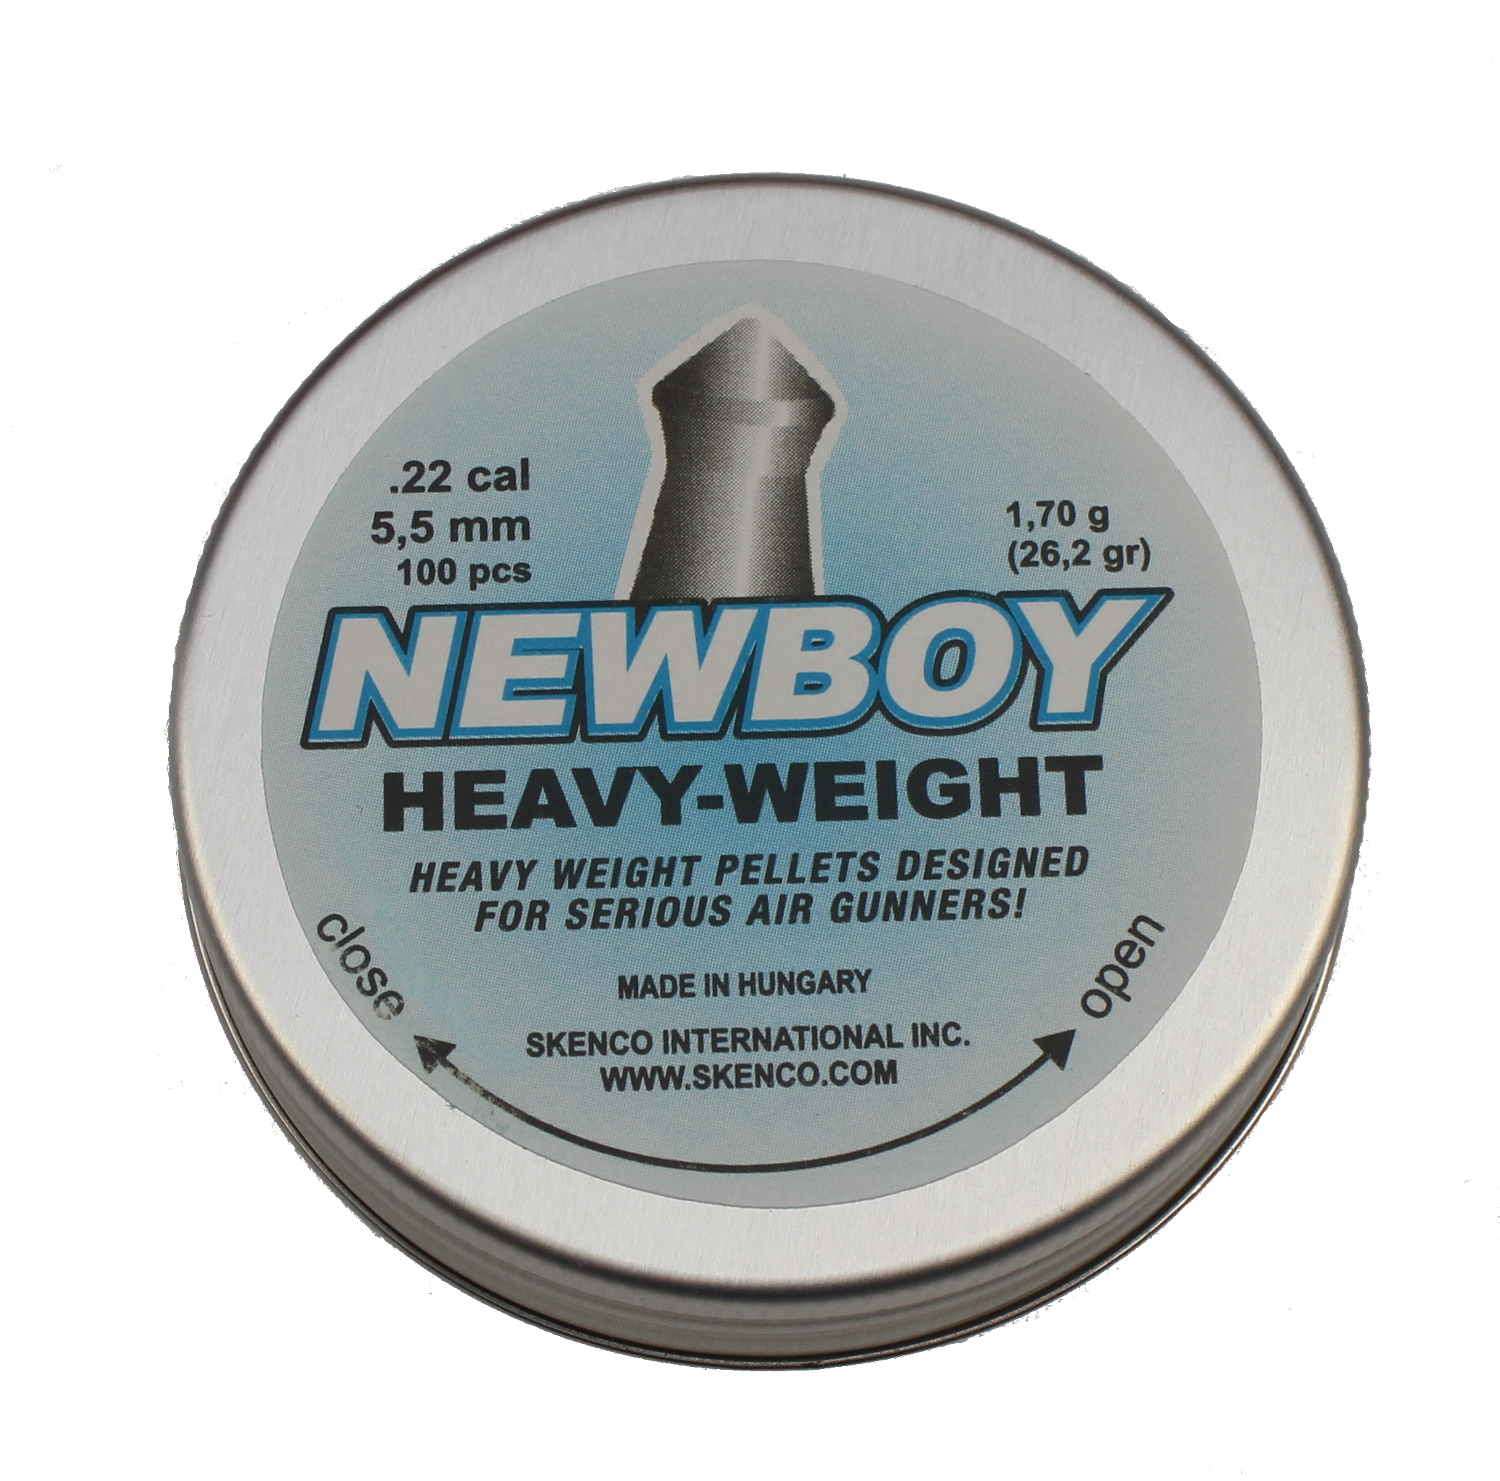 Skenco NewBoy Heavy Weight Diabolos spitz 5,5mm 100 Stk